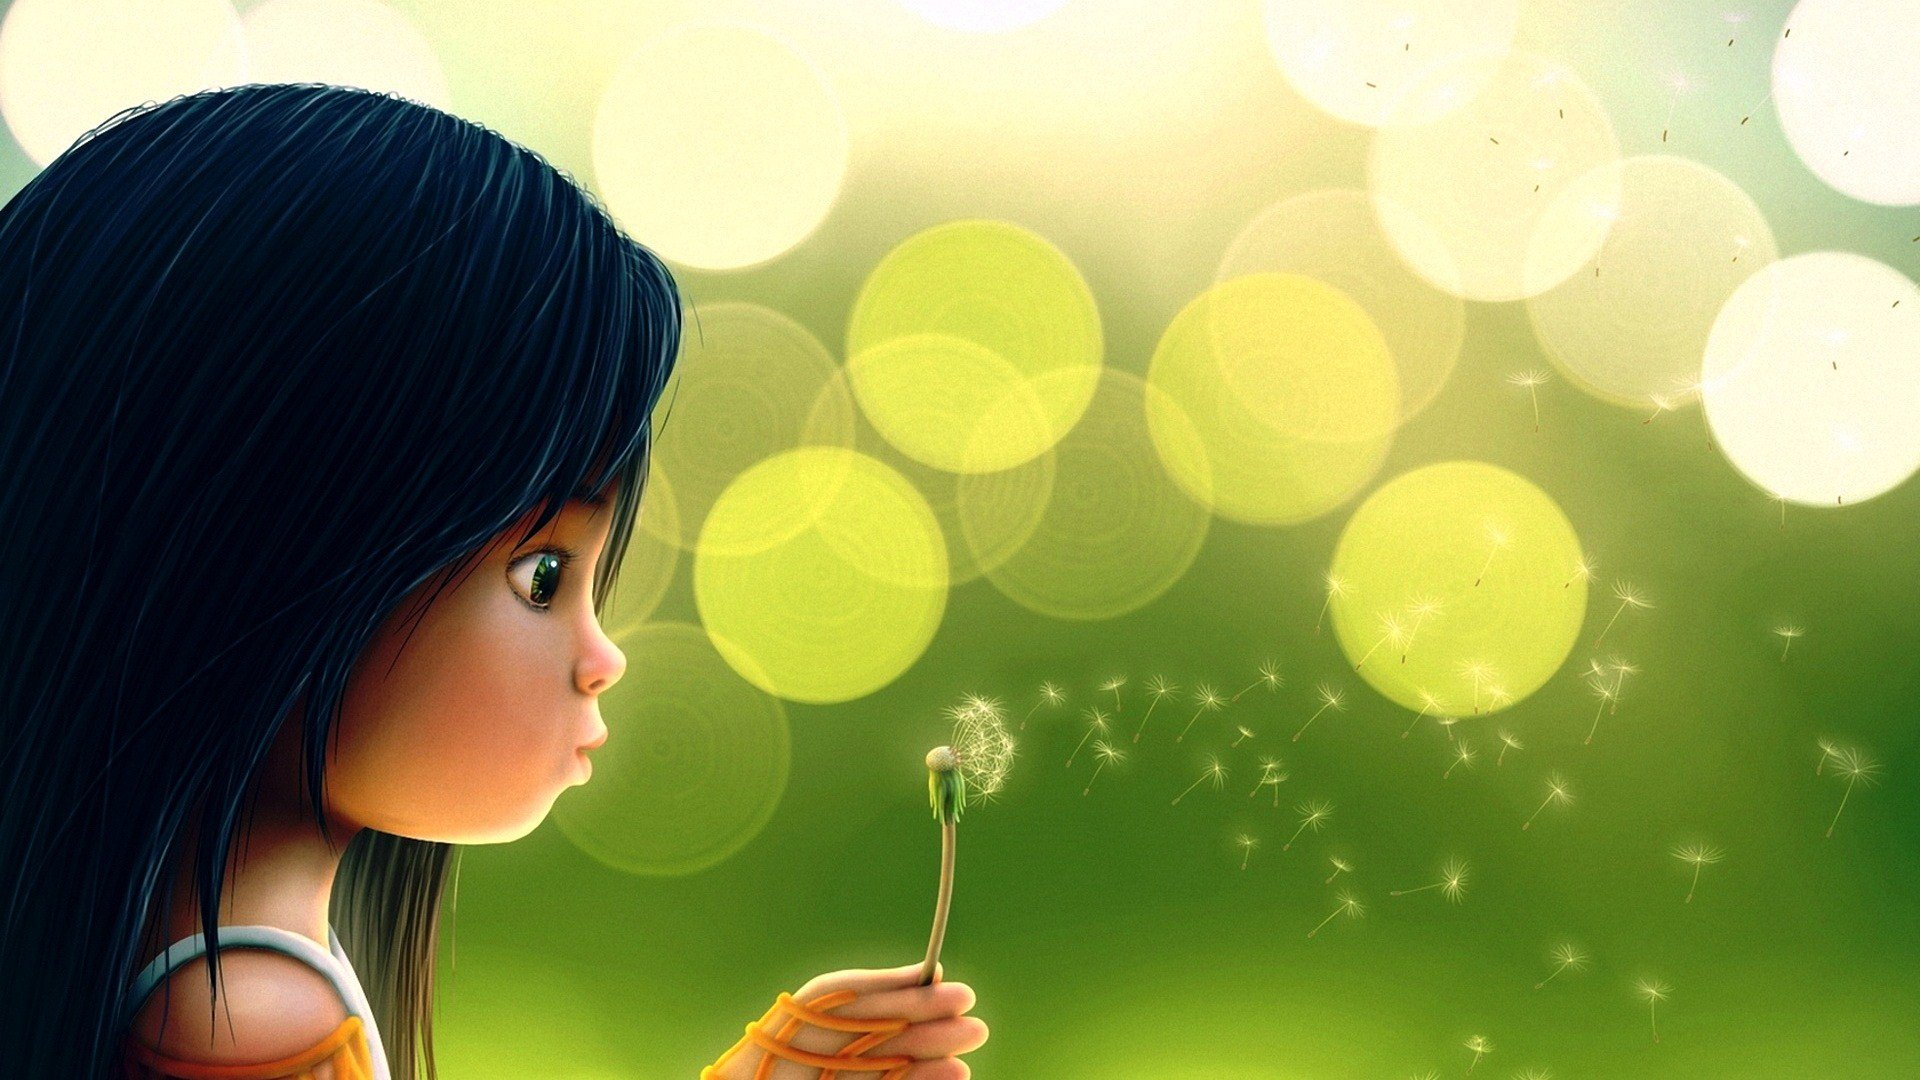 70 Cute Girly Wallpapers And Backgrounds